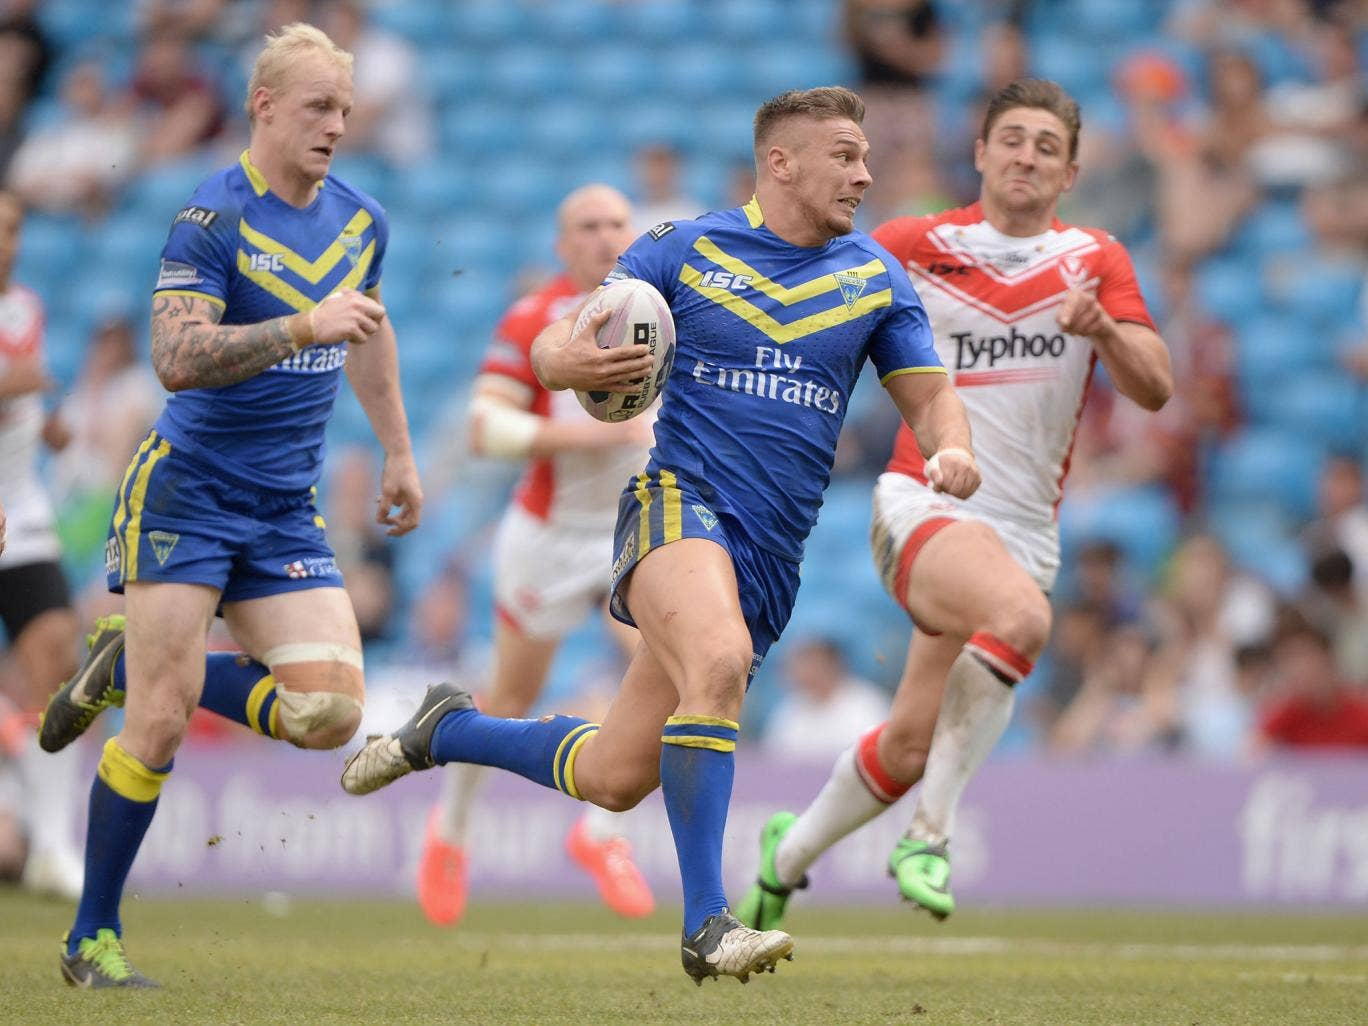 Matthew Russell sprints clear to score a try for Warrington